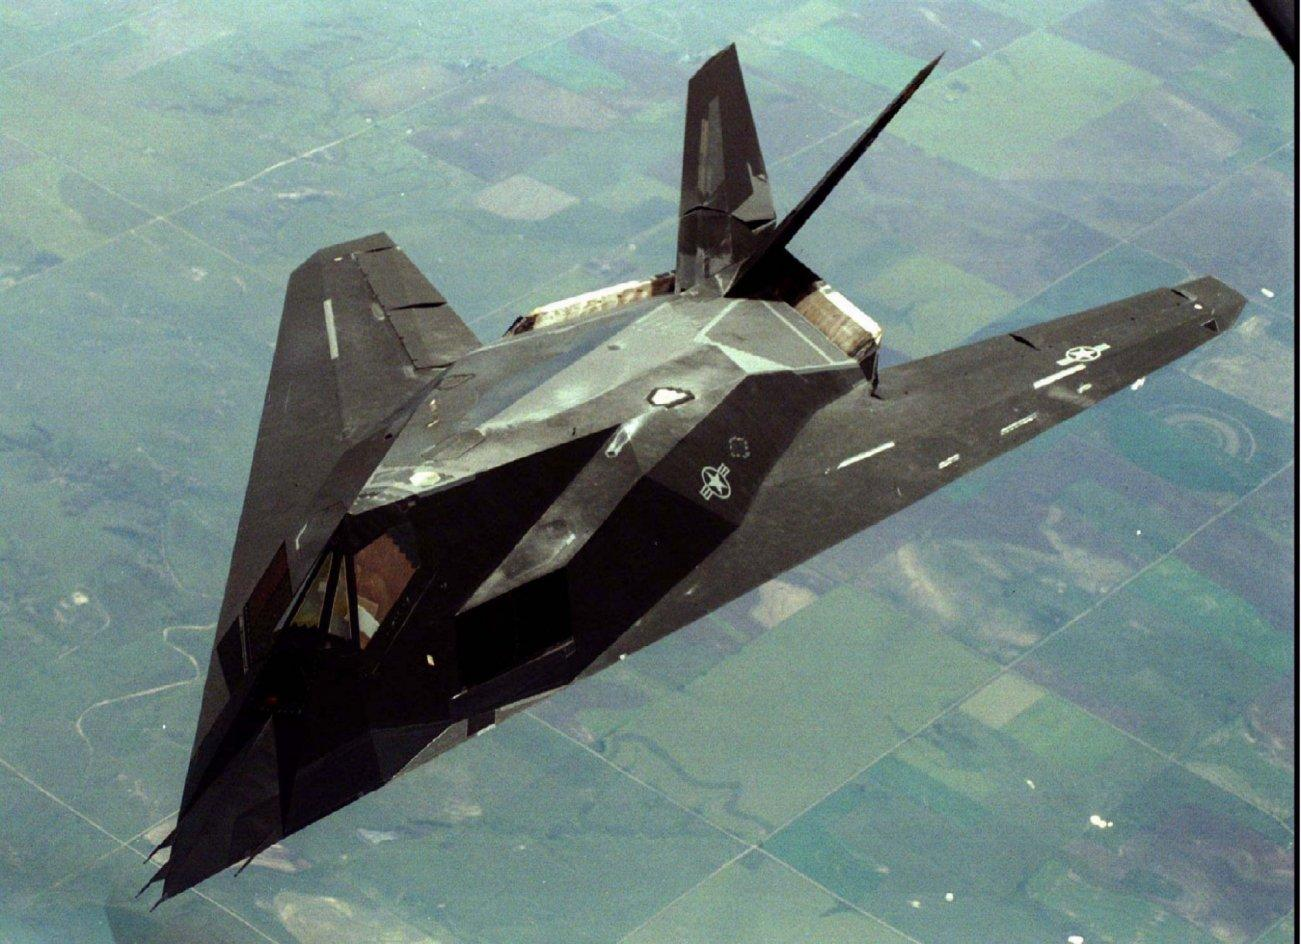 Top 5 Best Stealth Weapons of the US Military